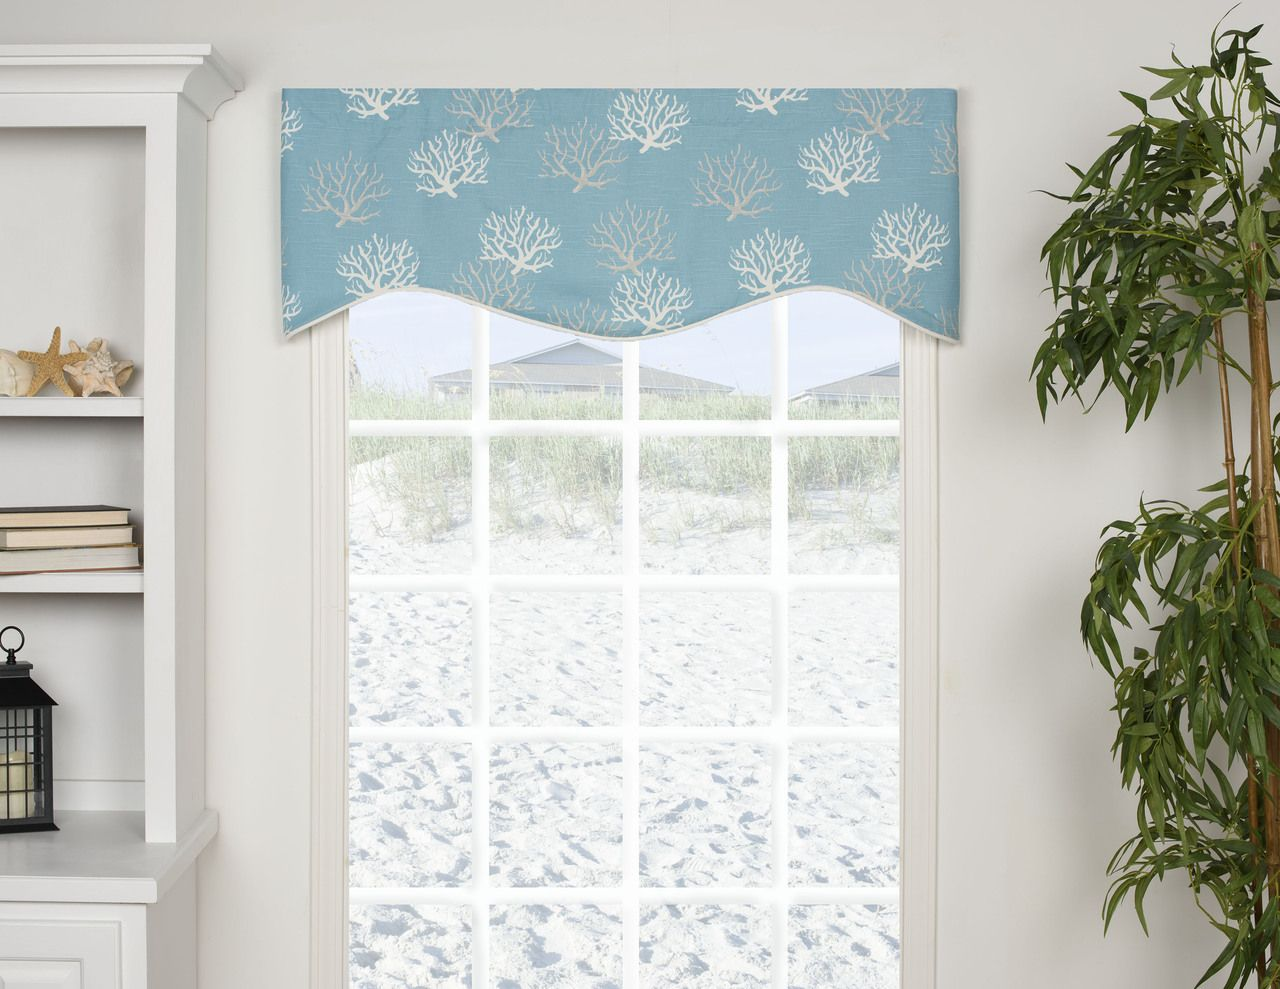 Captia Shaped Valance In 2019 Decor Beach Cottage Decor Valance Curtains